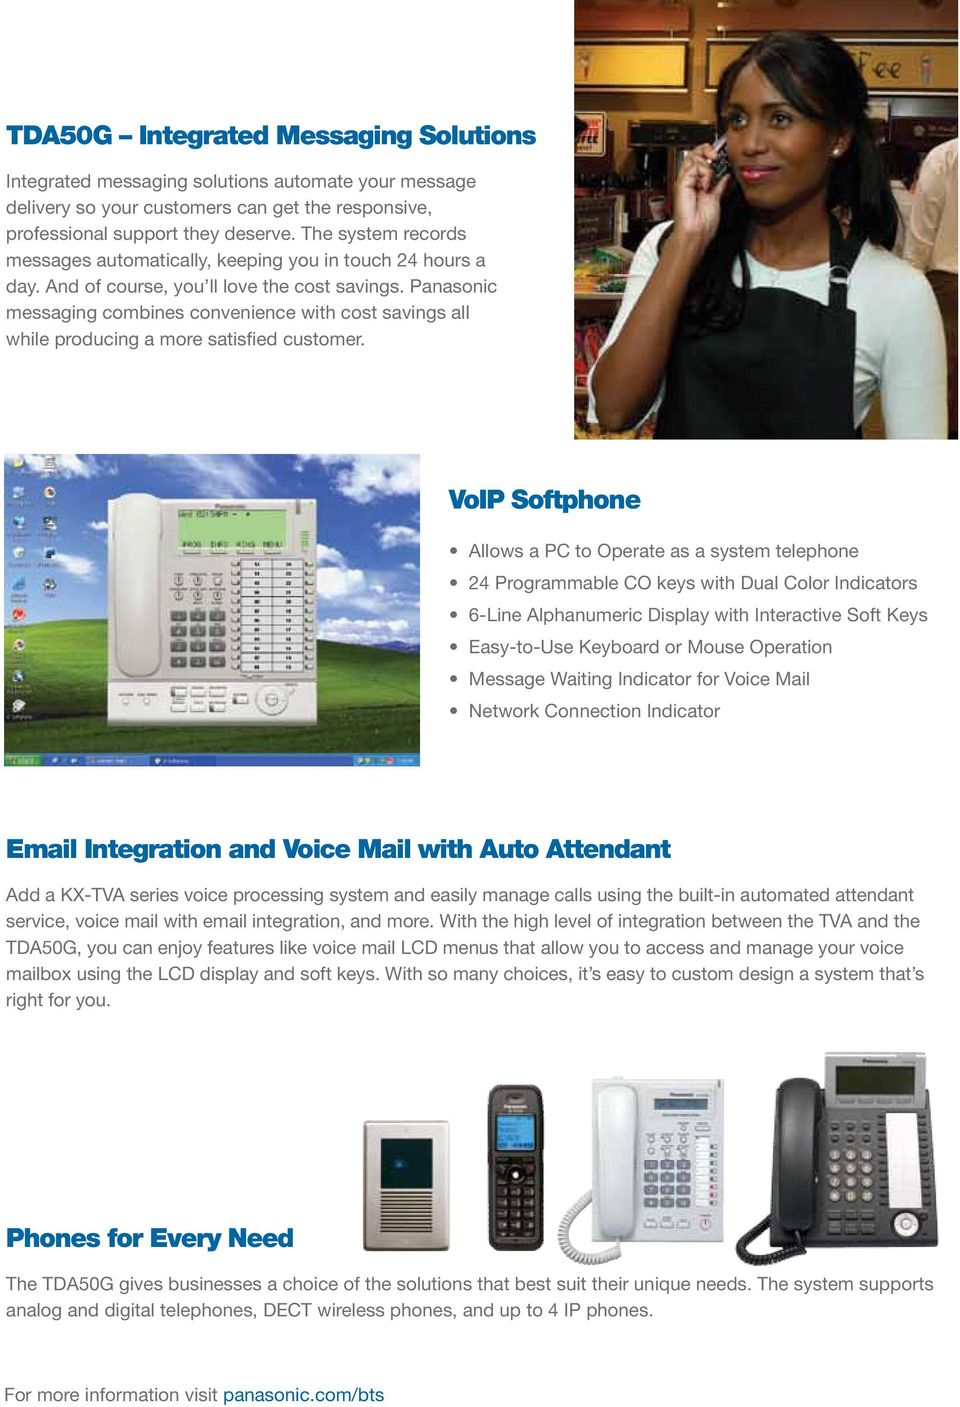 Panasonic messaging combines convenience with cost savings all while producing a more satisfied customer.